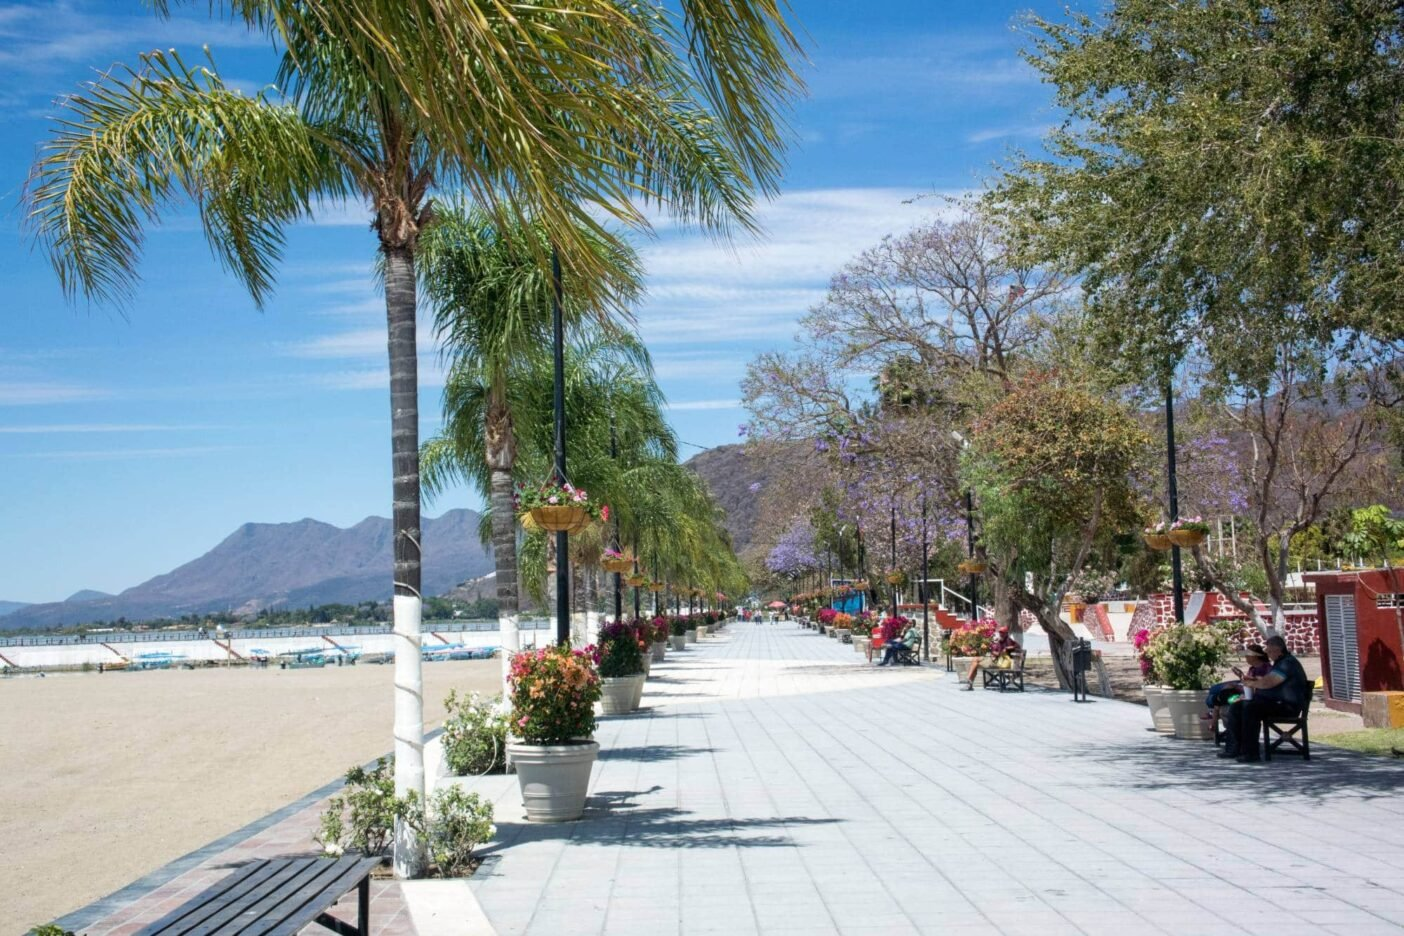 Best places to live in mexico - Chapala